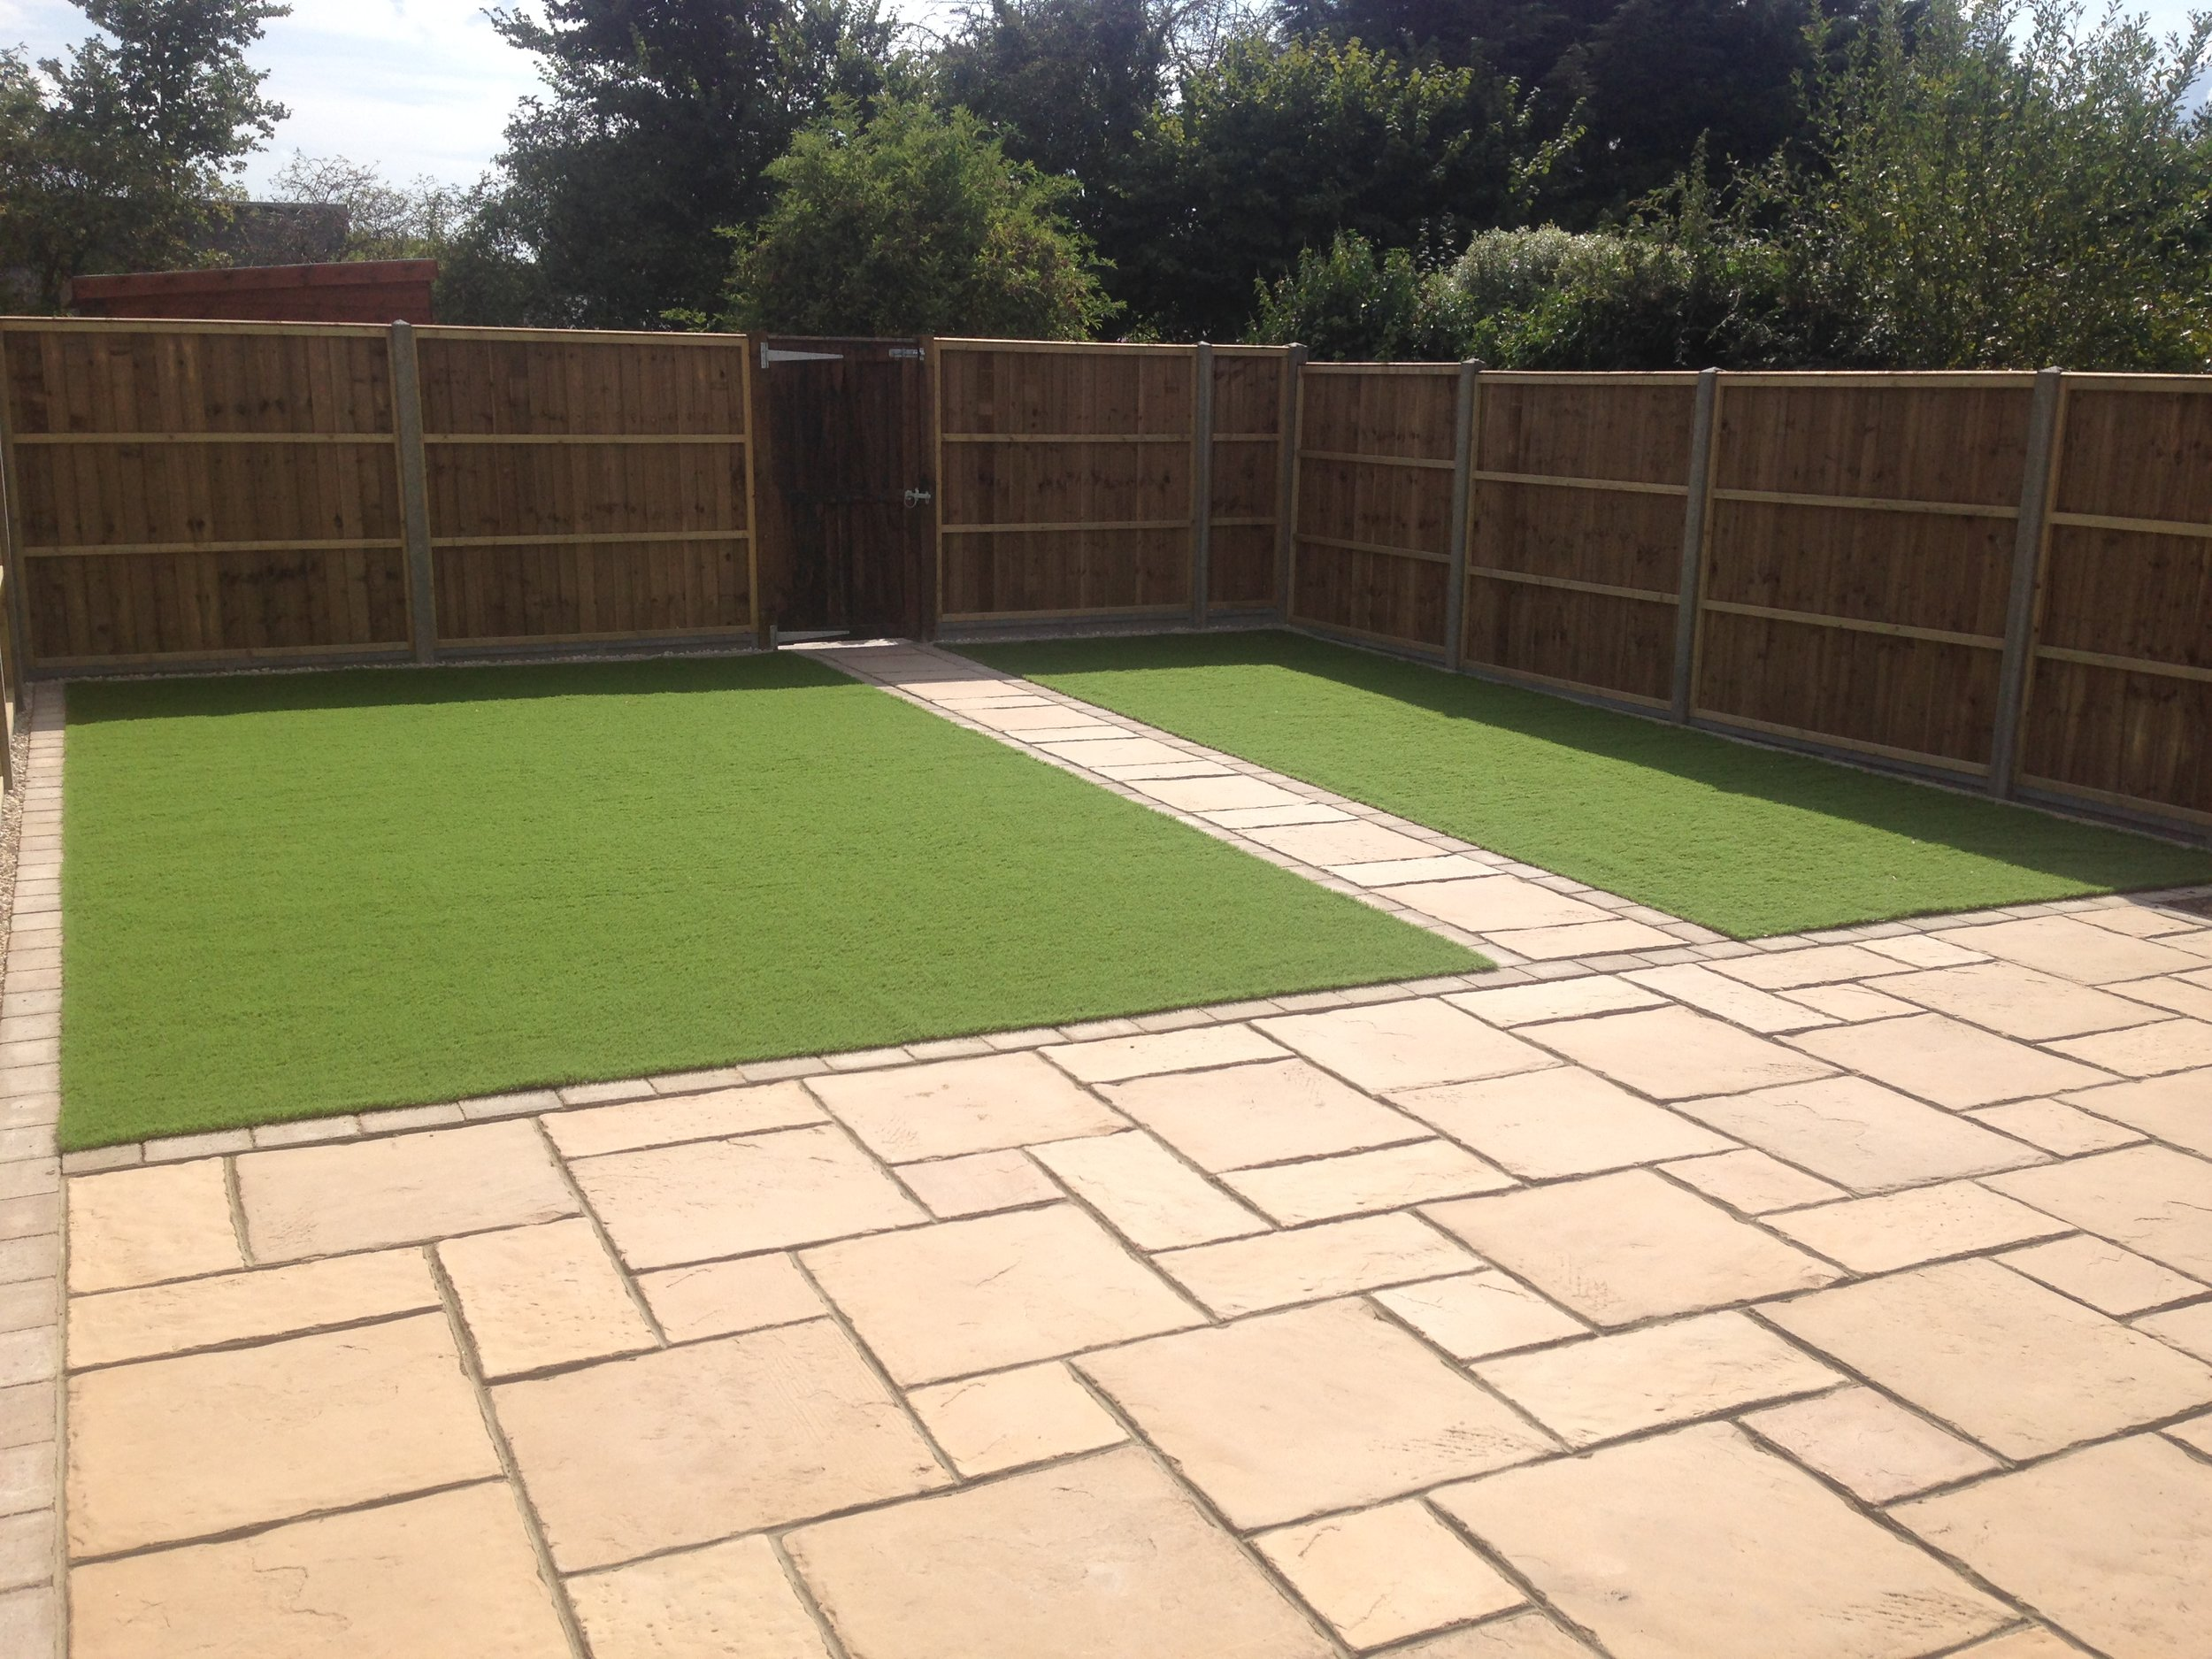 Brett Canterbury slabs were used on this patio with closed board fence panels and artificial grass